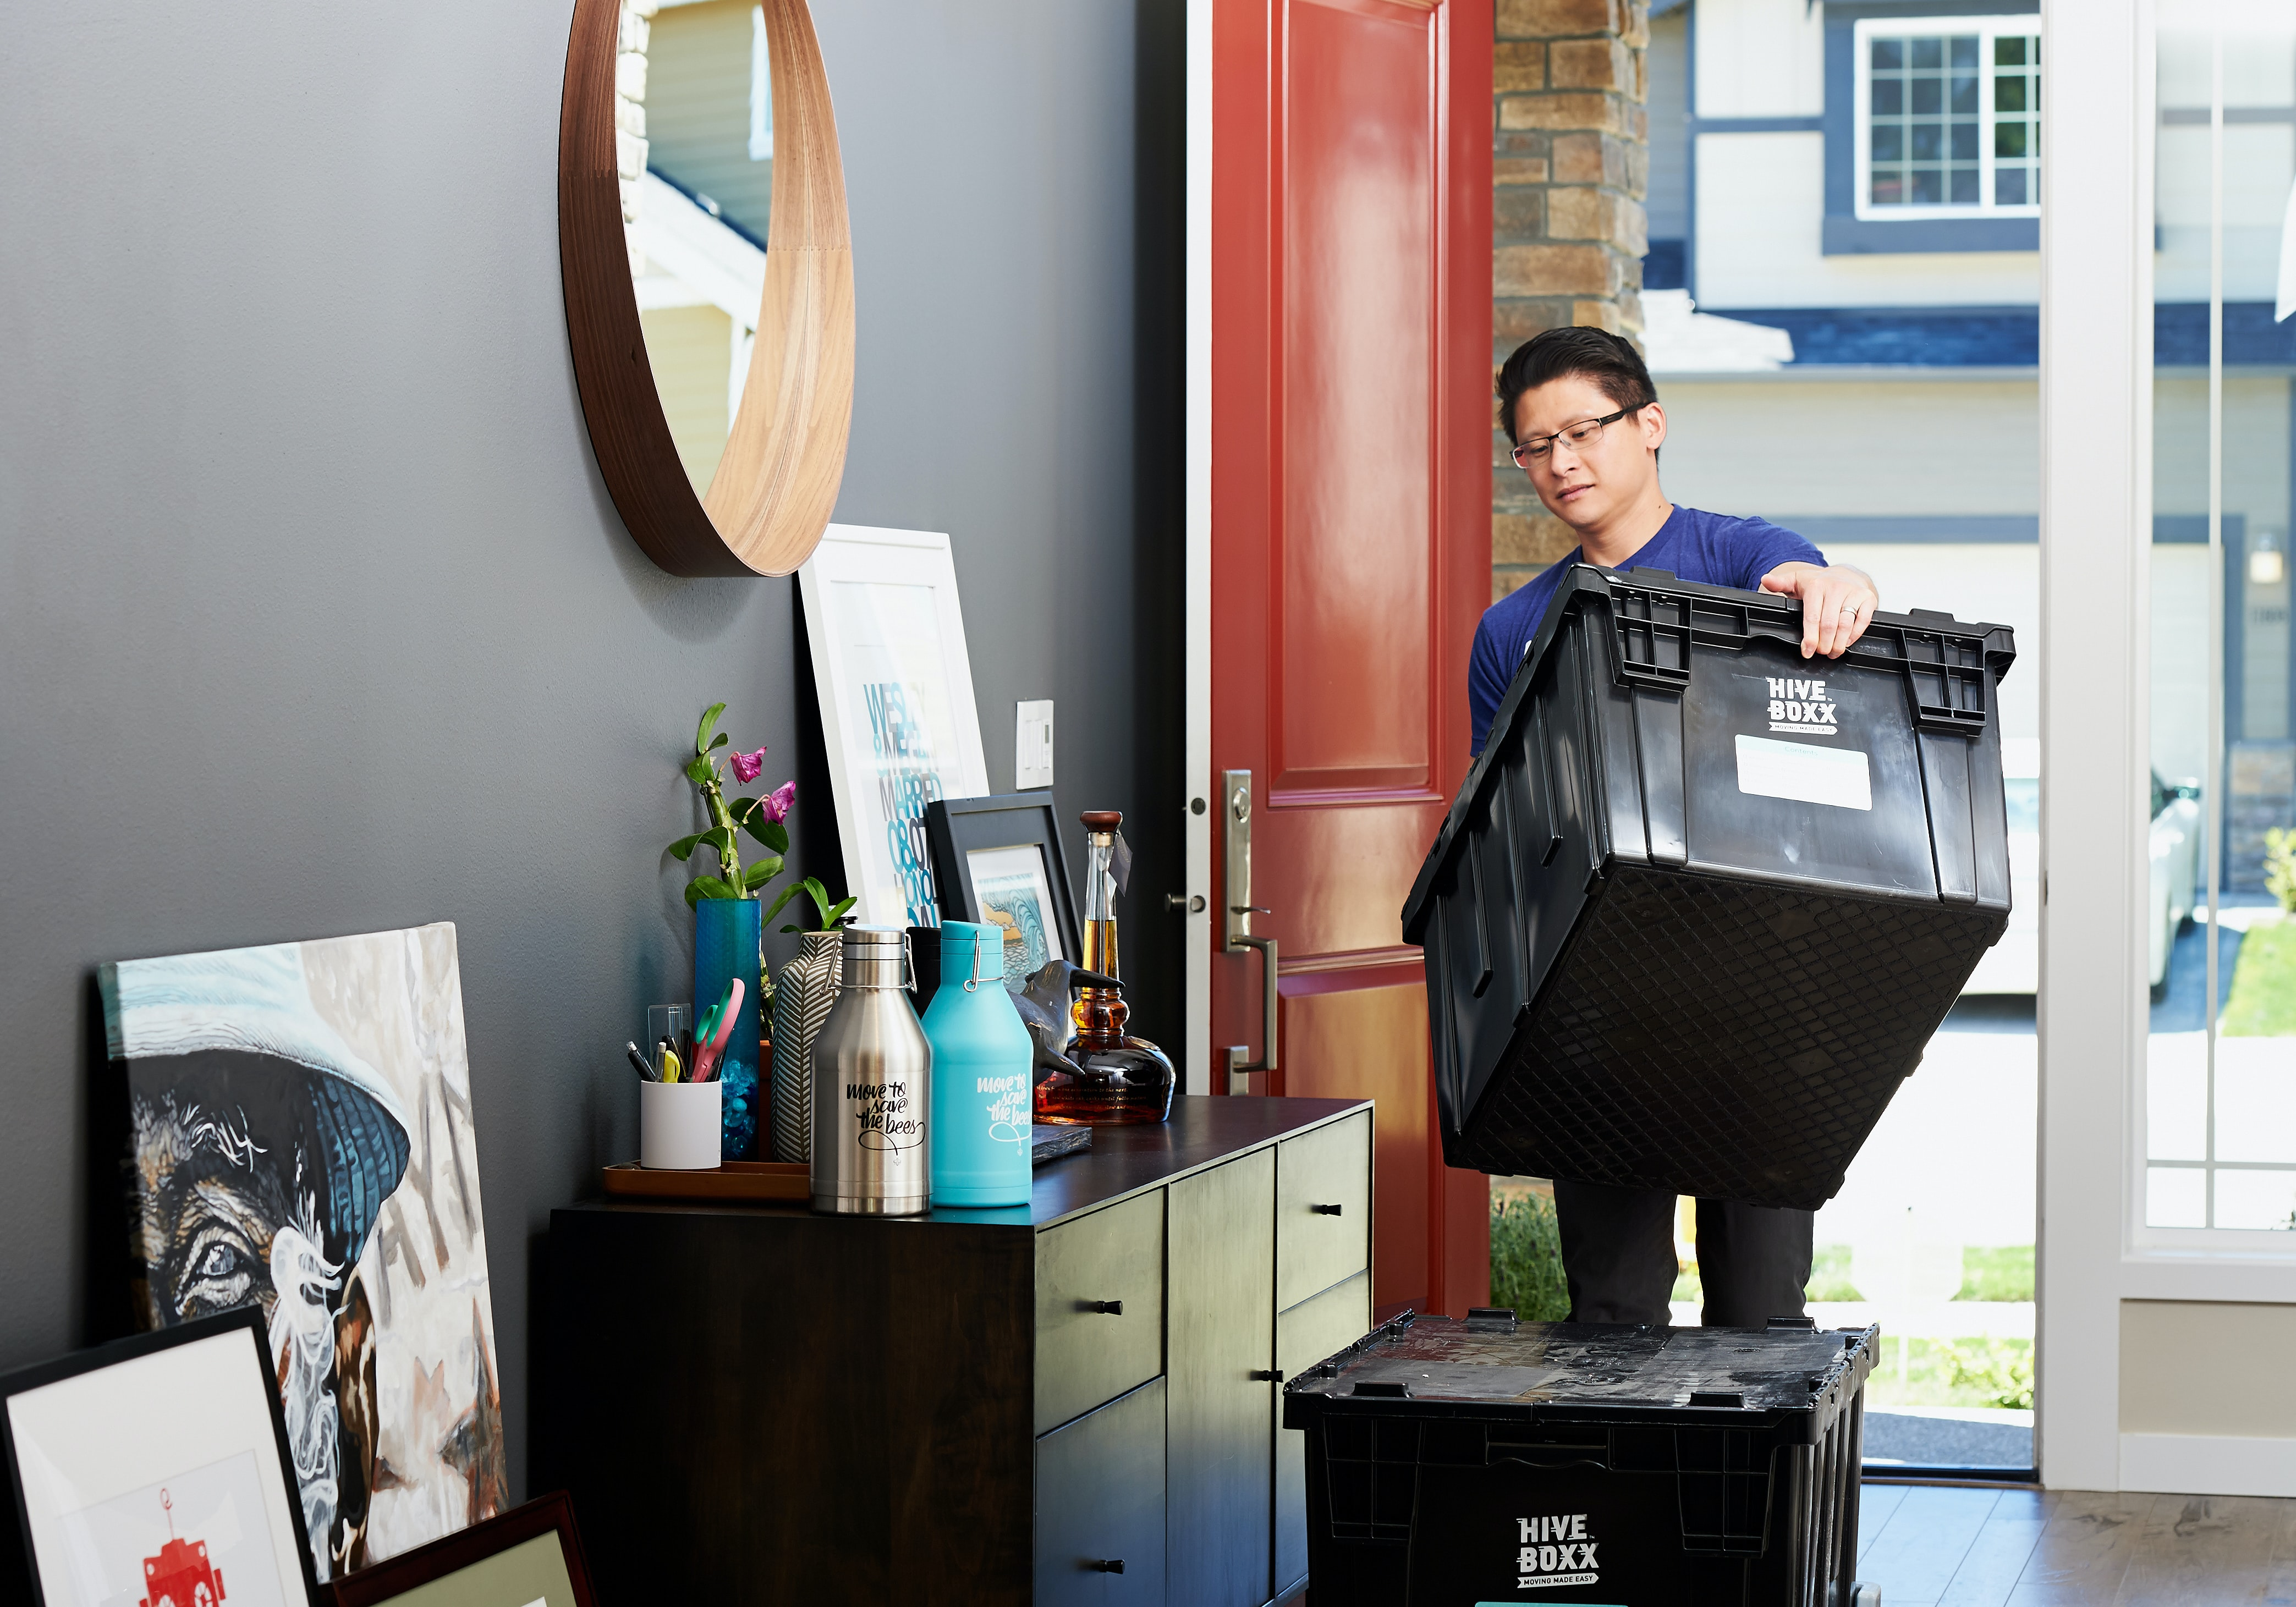 5 Packing Tips To Consider Before Your Big Move